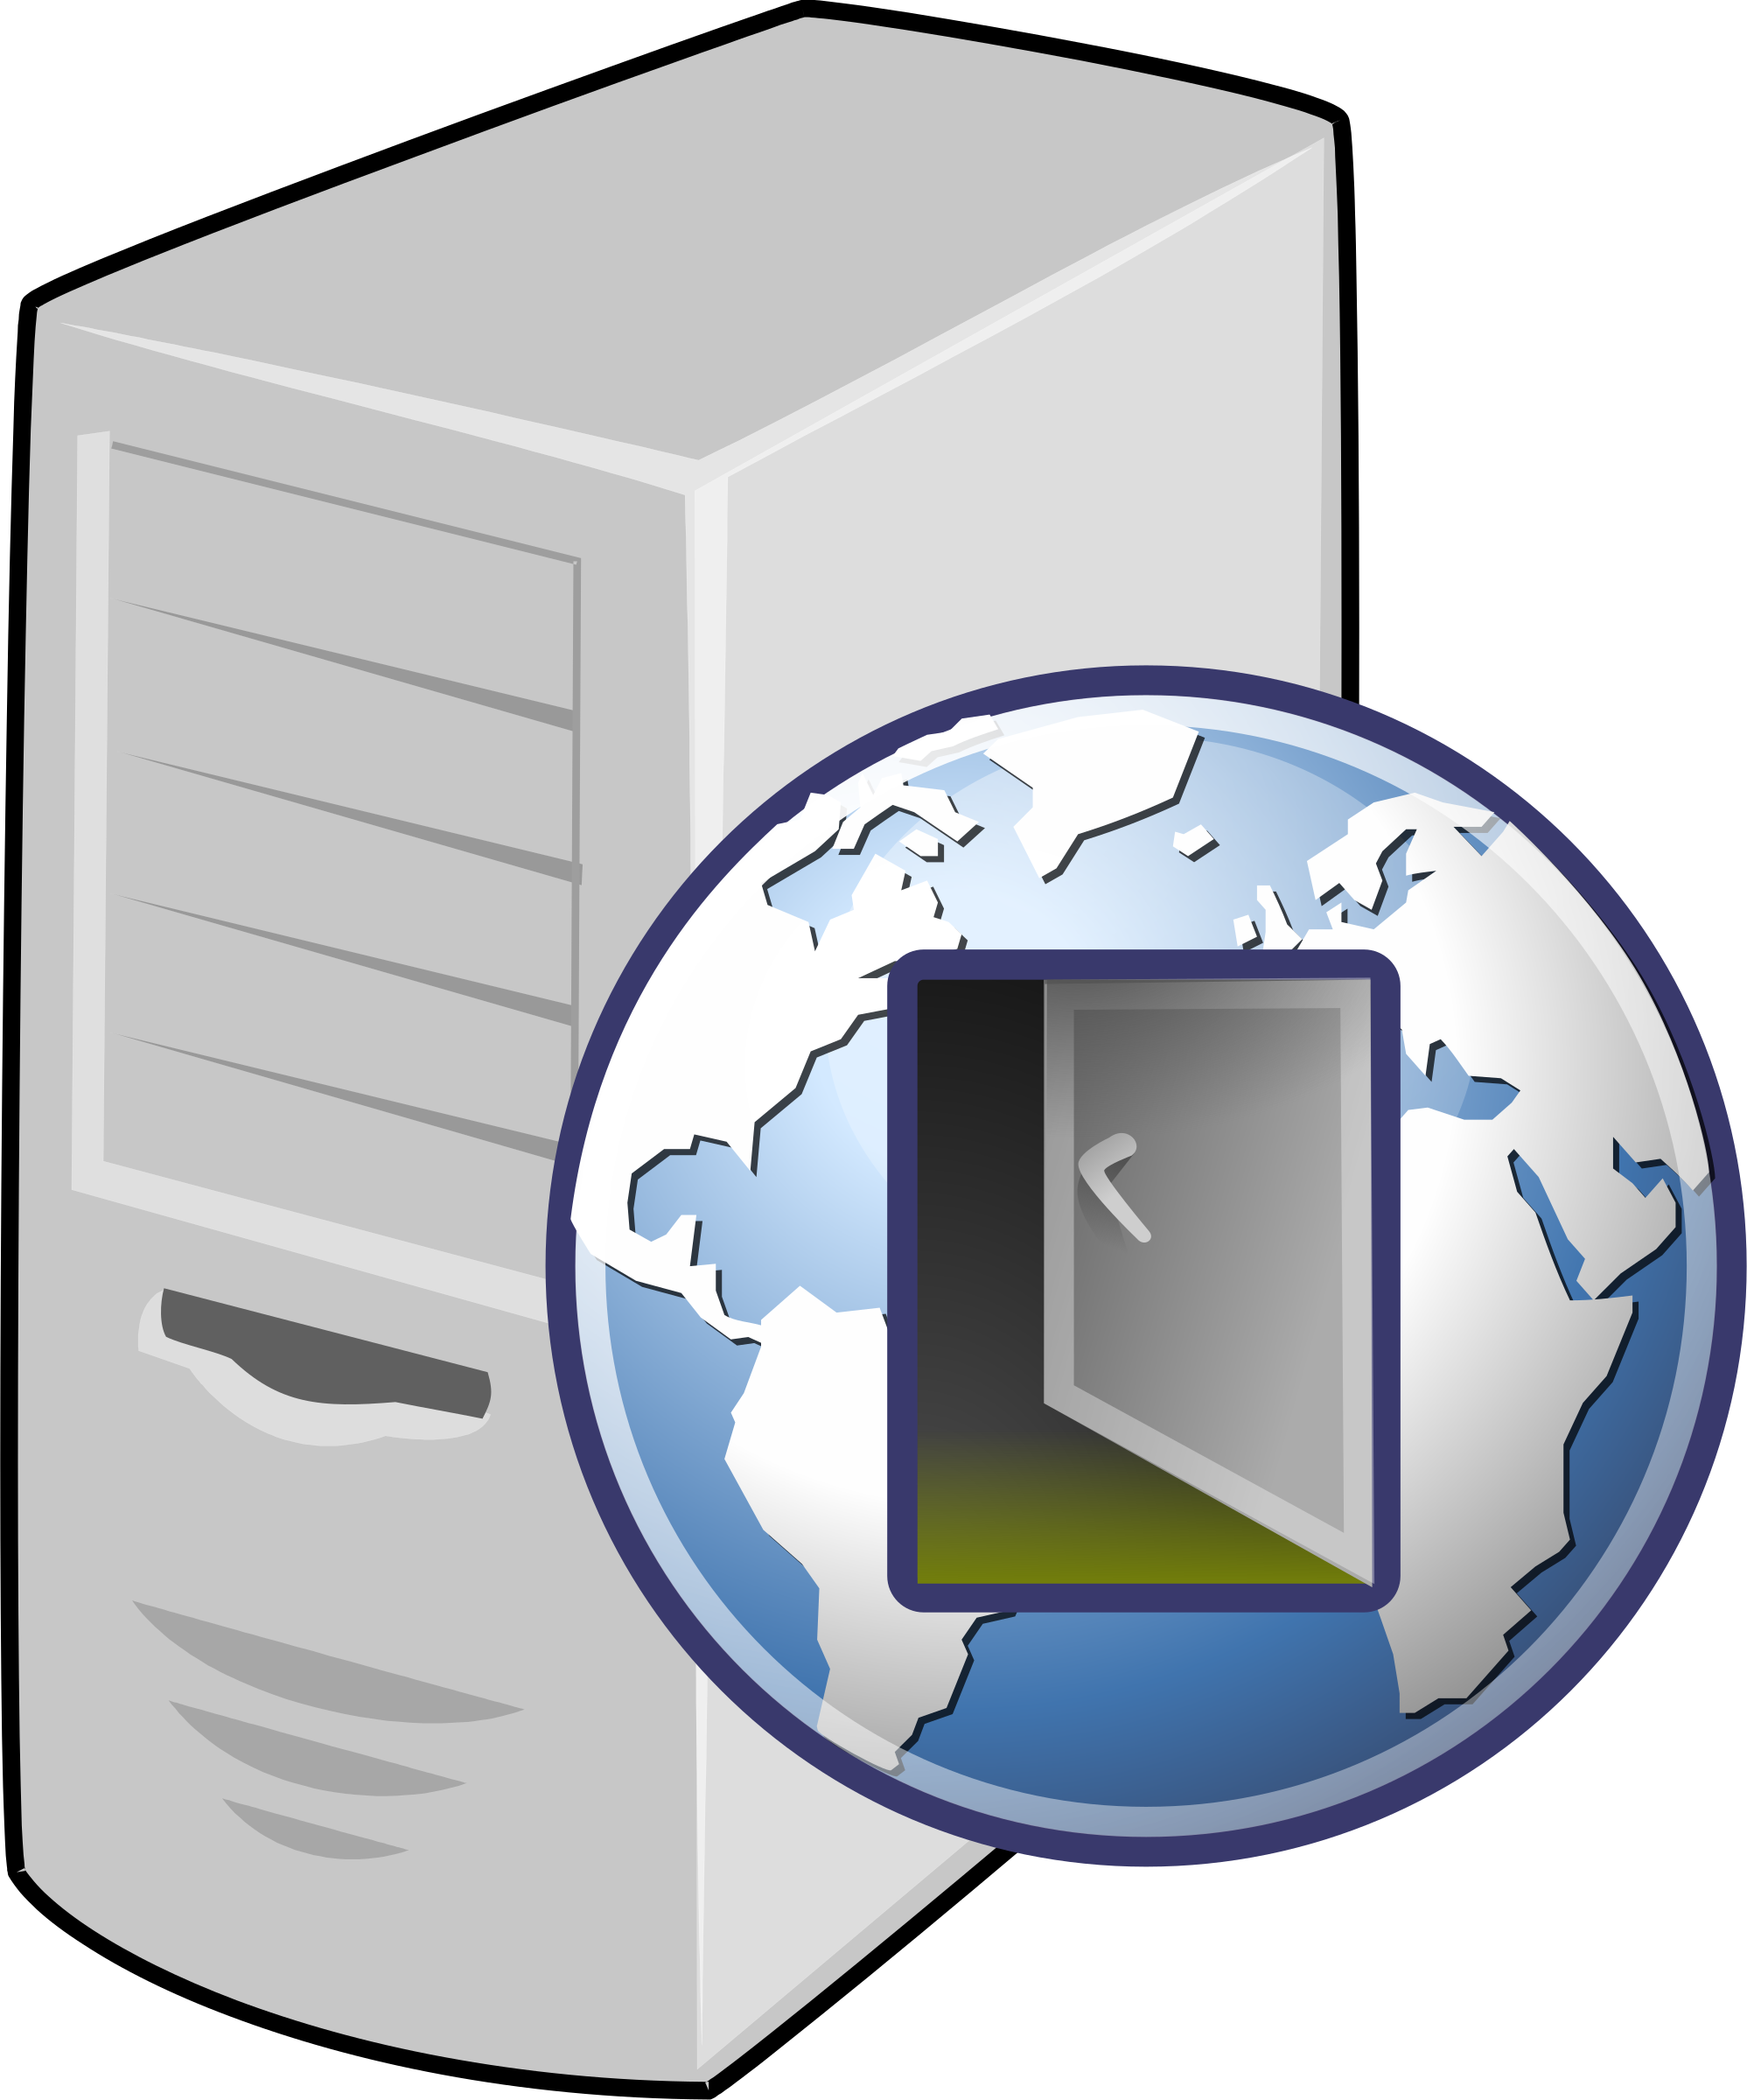 Server clipart server icon. Proxy icons png free